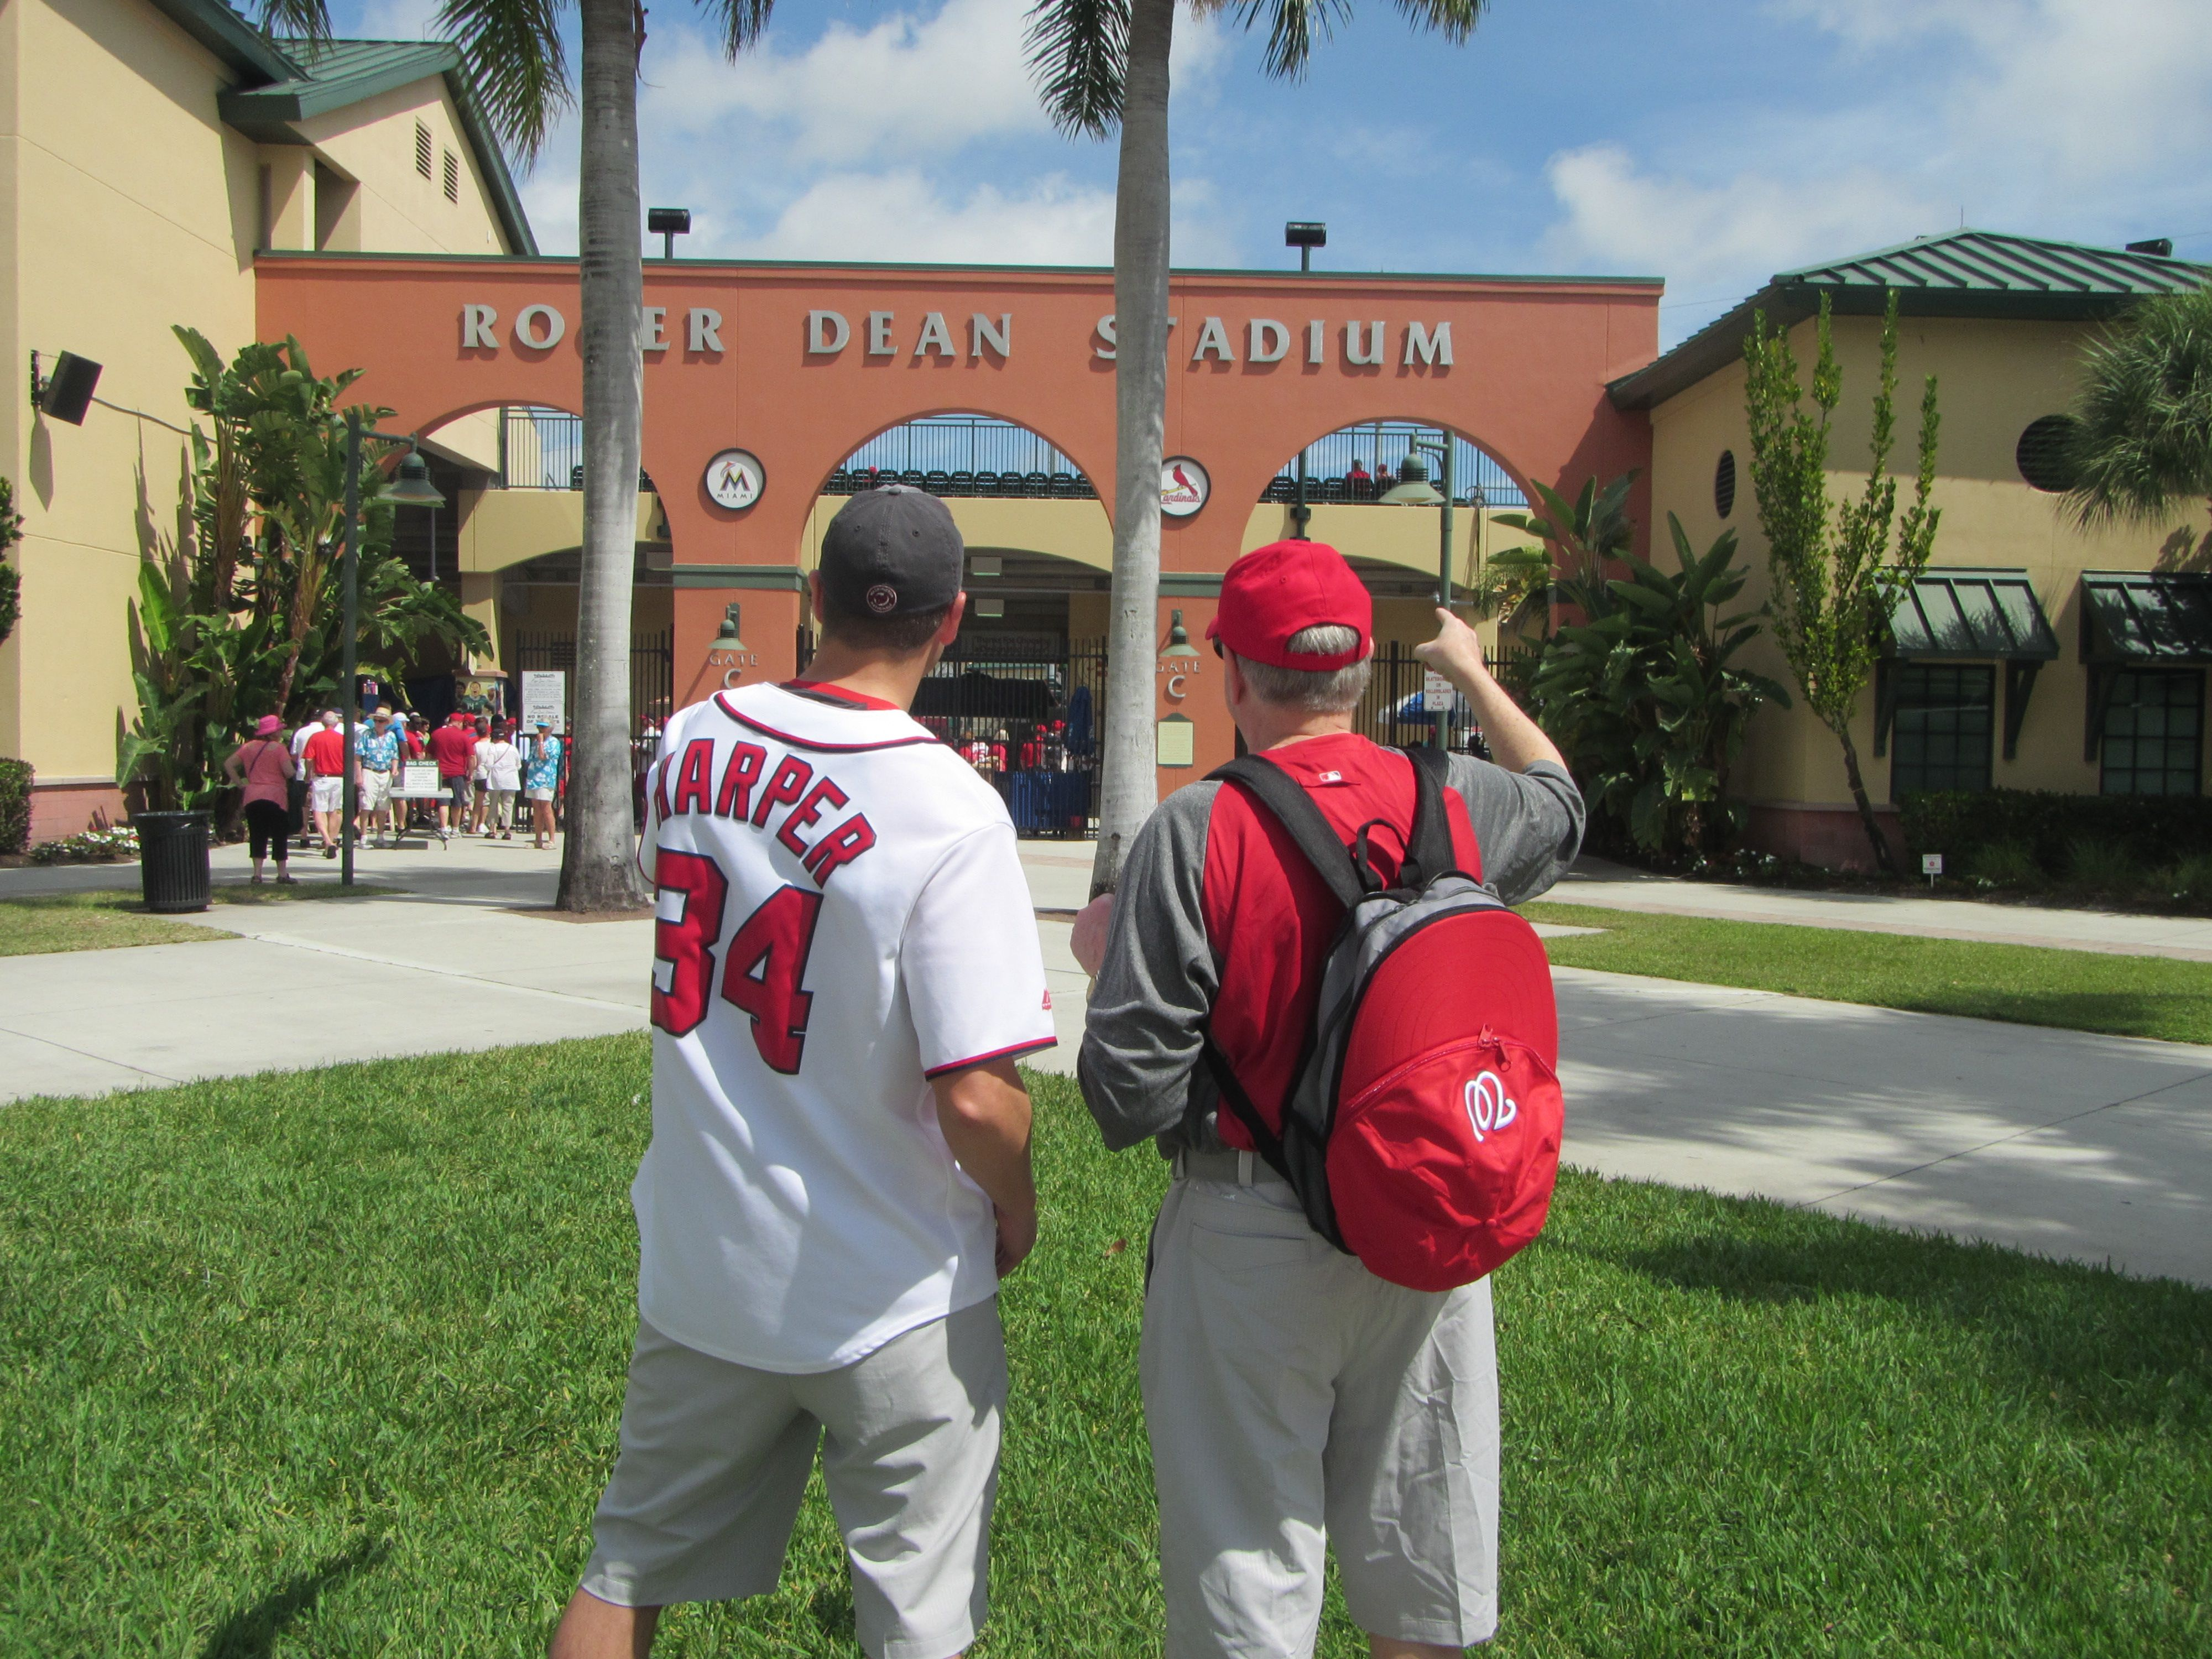 Sean Rox and Dad at Roger Dean Stadium in Jupiter, FL to see Nats Spring Training baseball